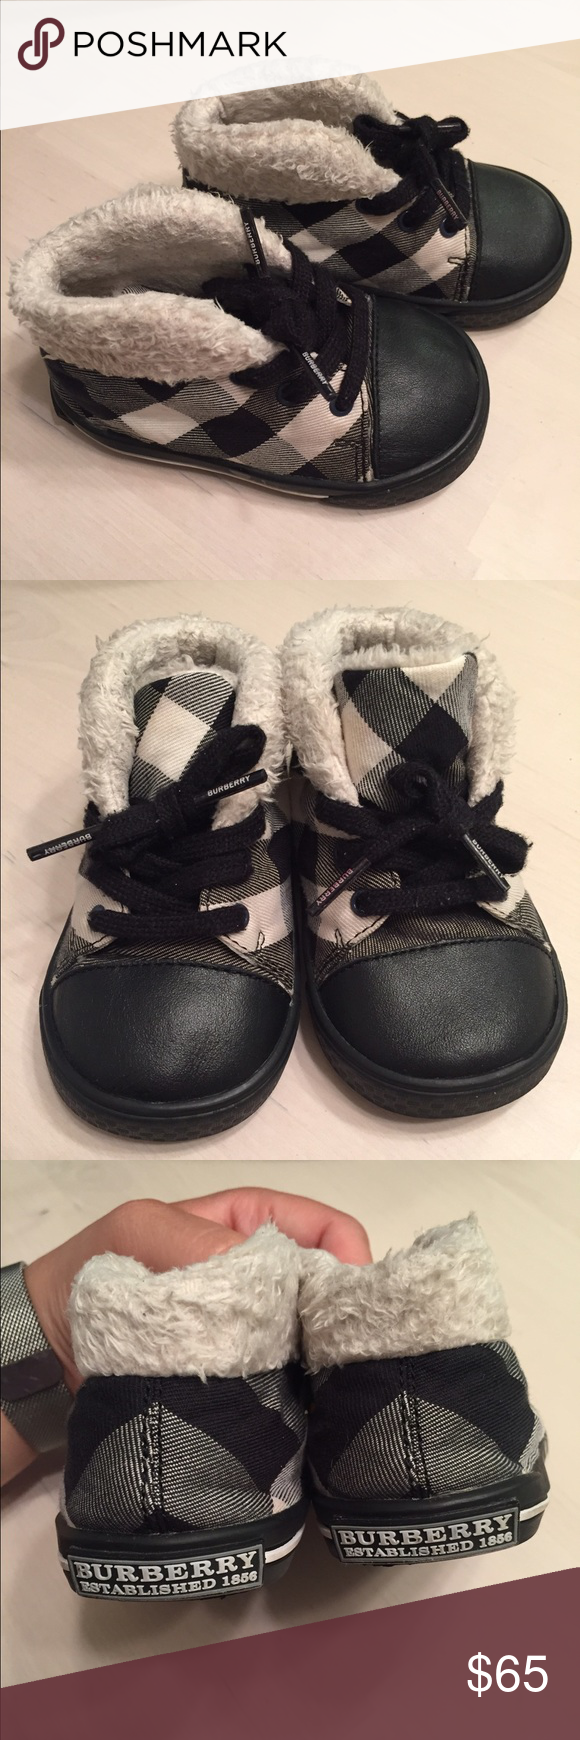 Toddler Shoes, Burberry Shoes